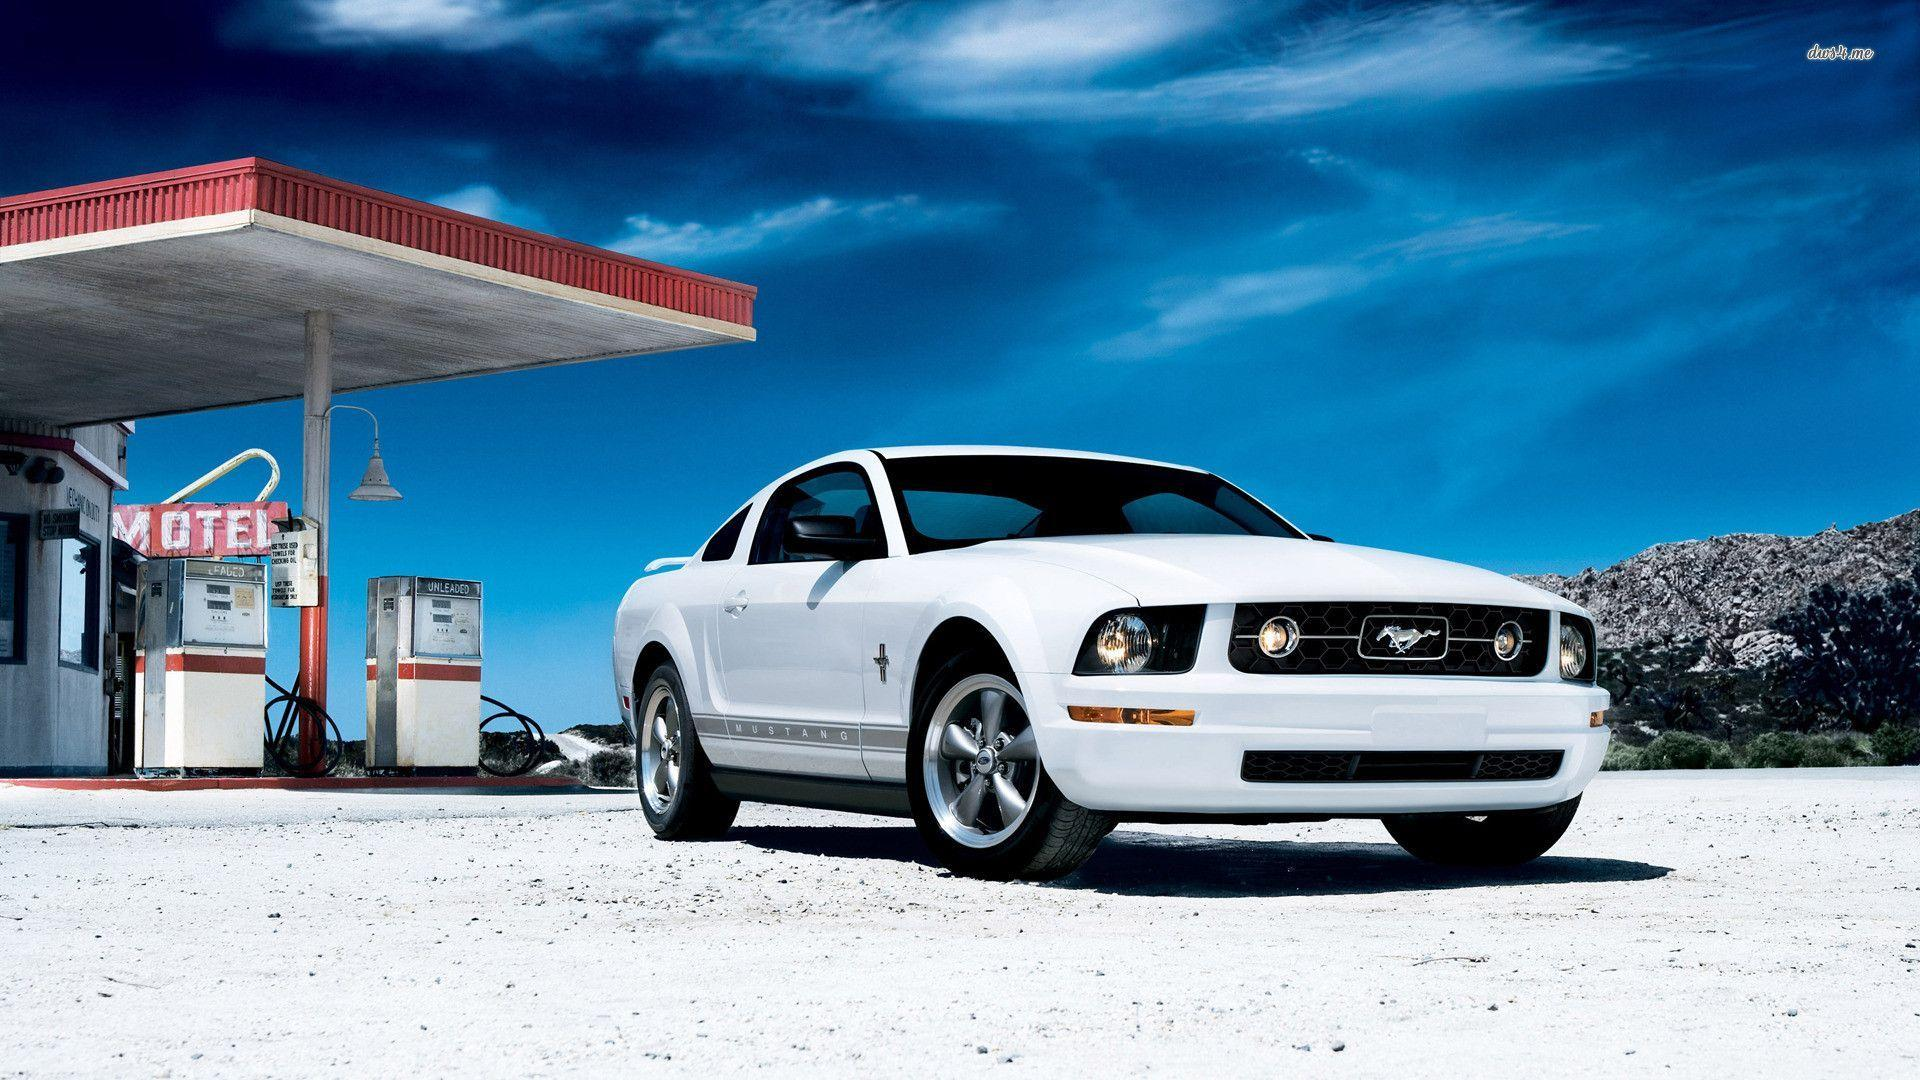 Wallpaper Ford Mustang Hd Background Wallpaper 29 HD Wallpapers .